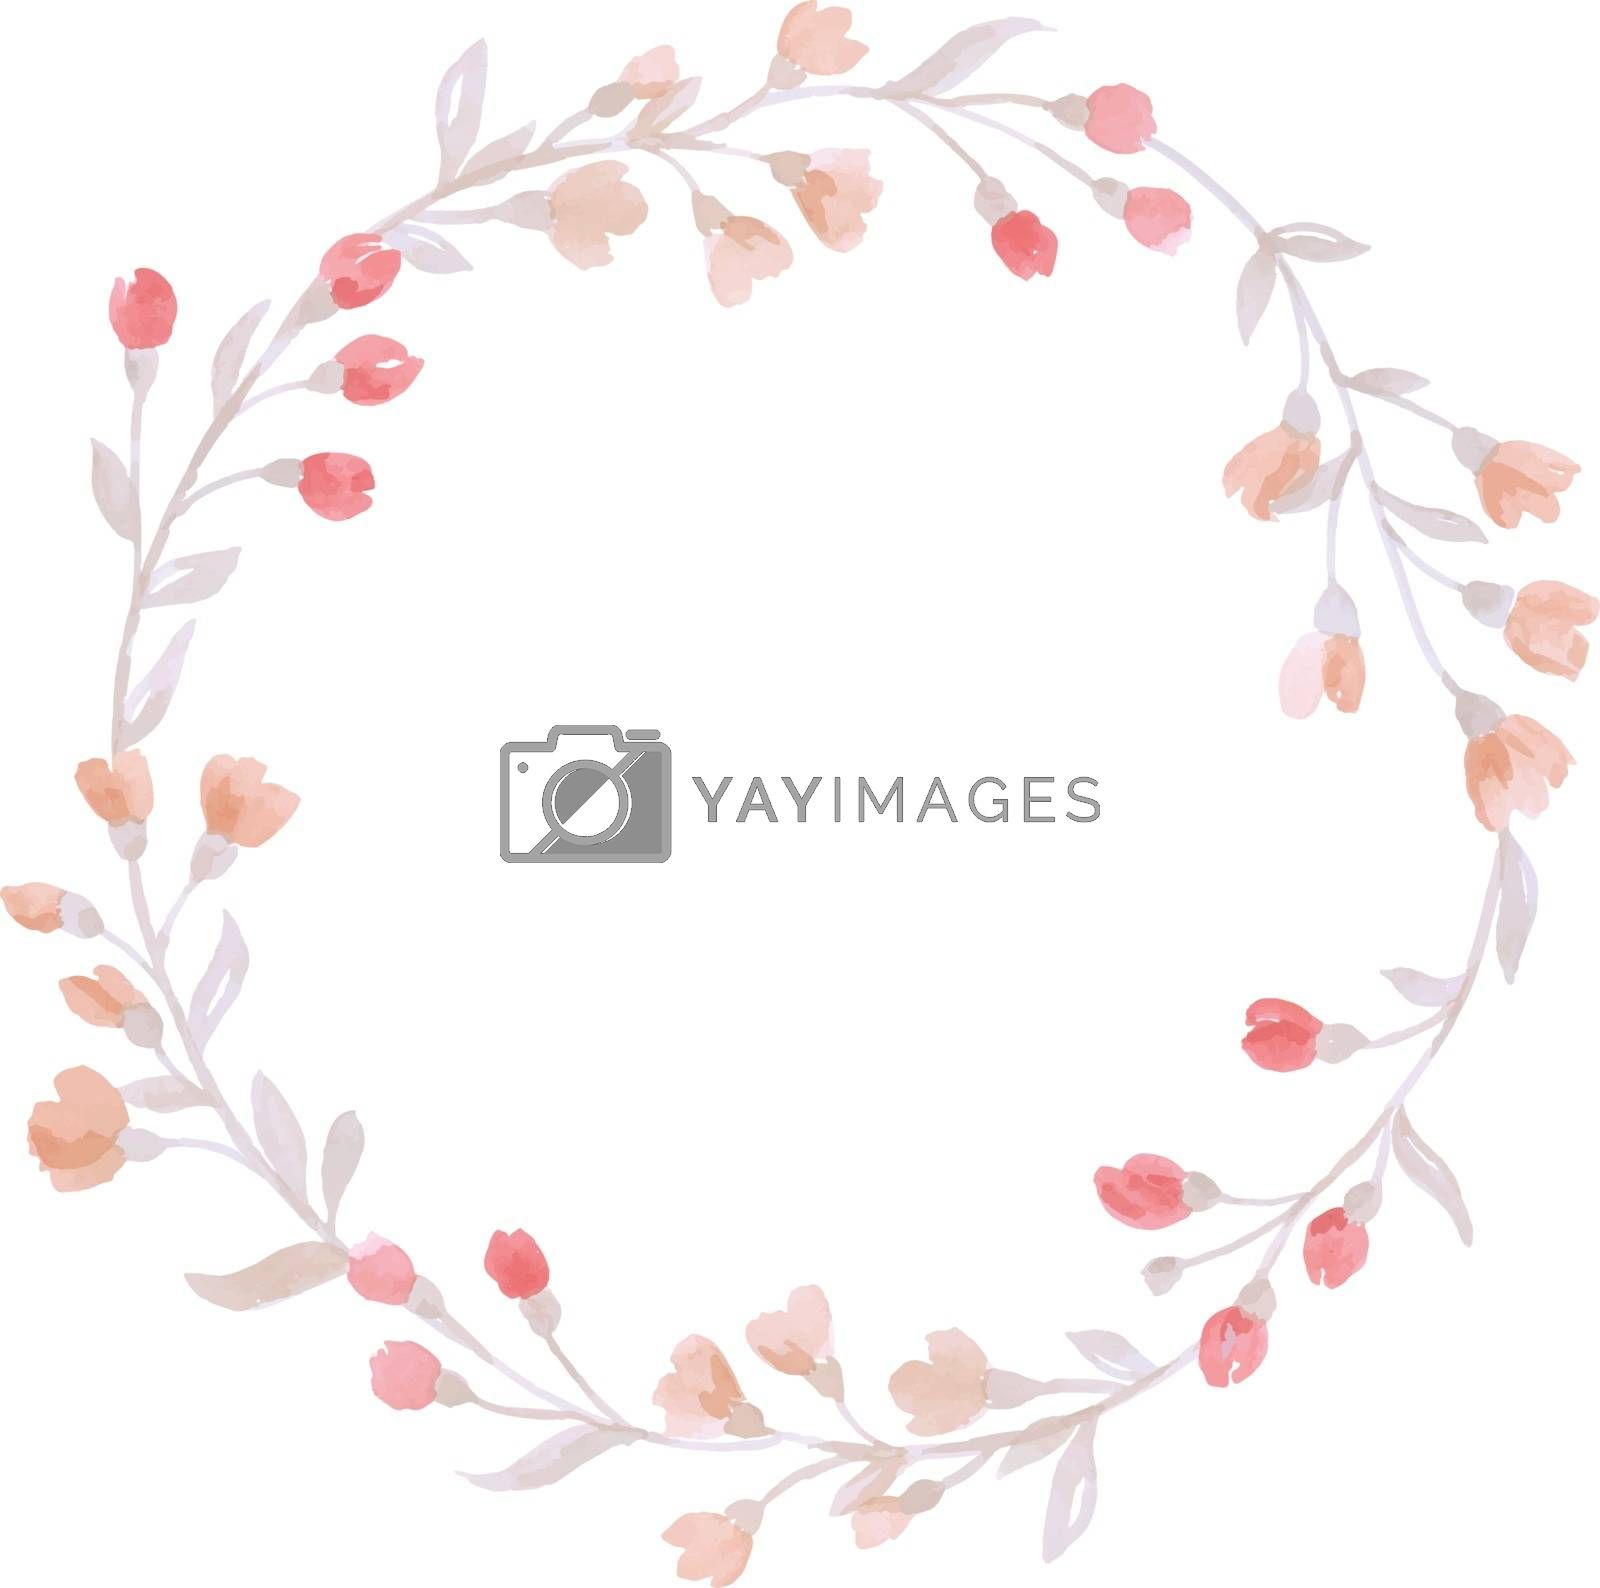 The isolated vector hand painted pastel watercolor wreath flower wedding decoration